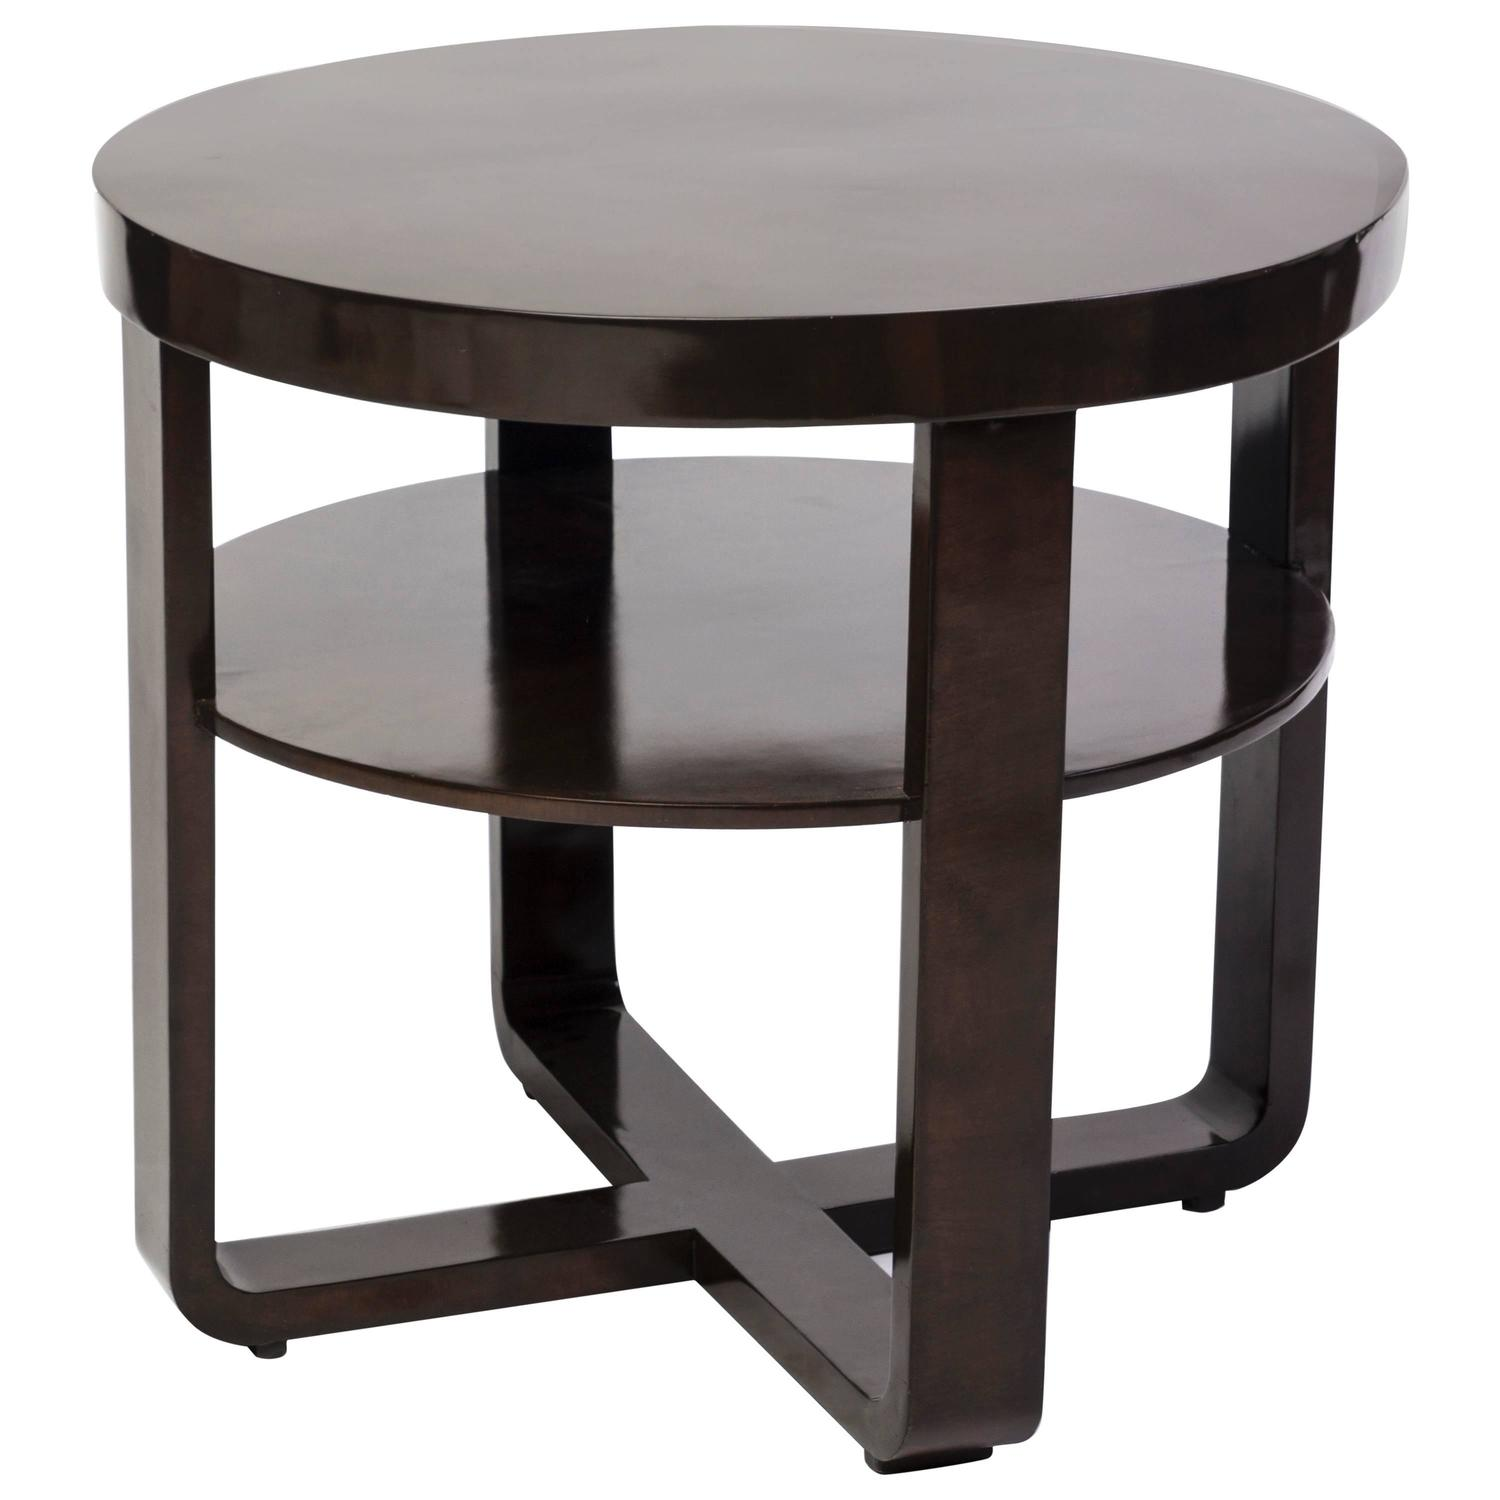 Elegant Art Deco Round Side Table Or Gueridon For Sale At